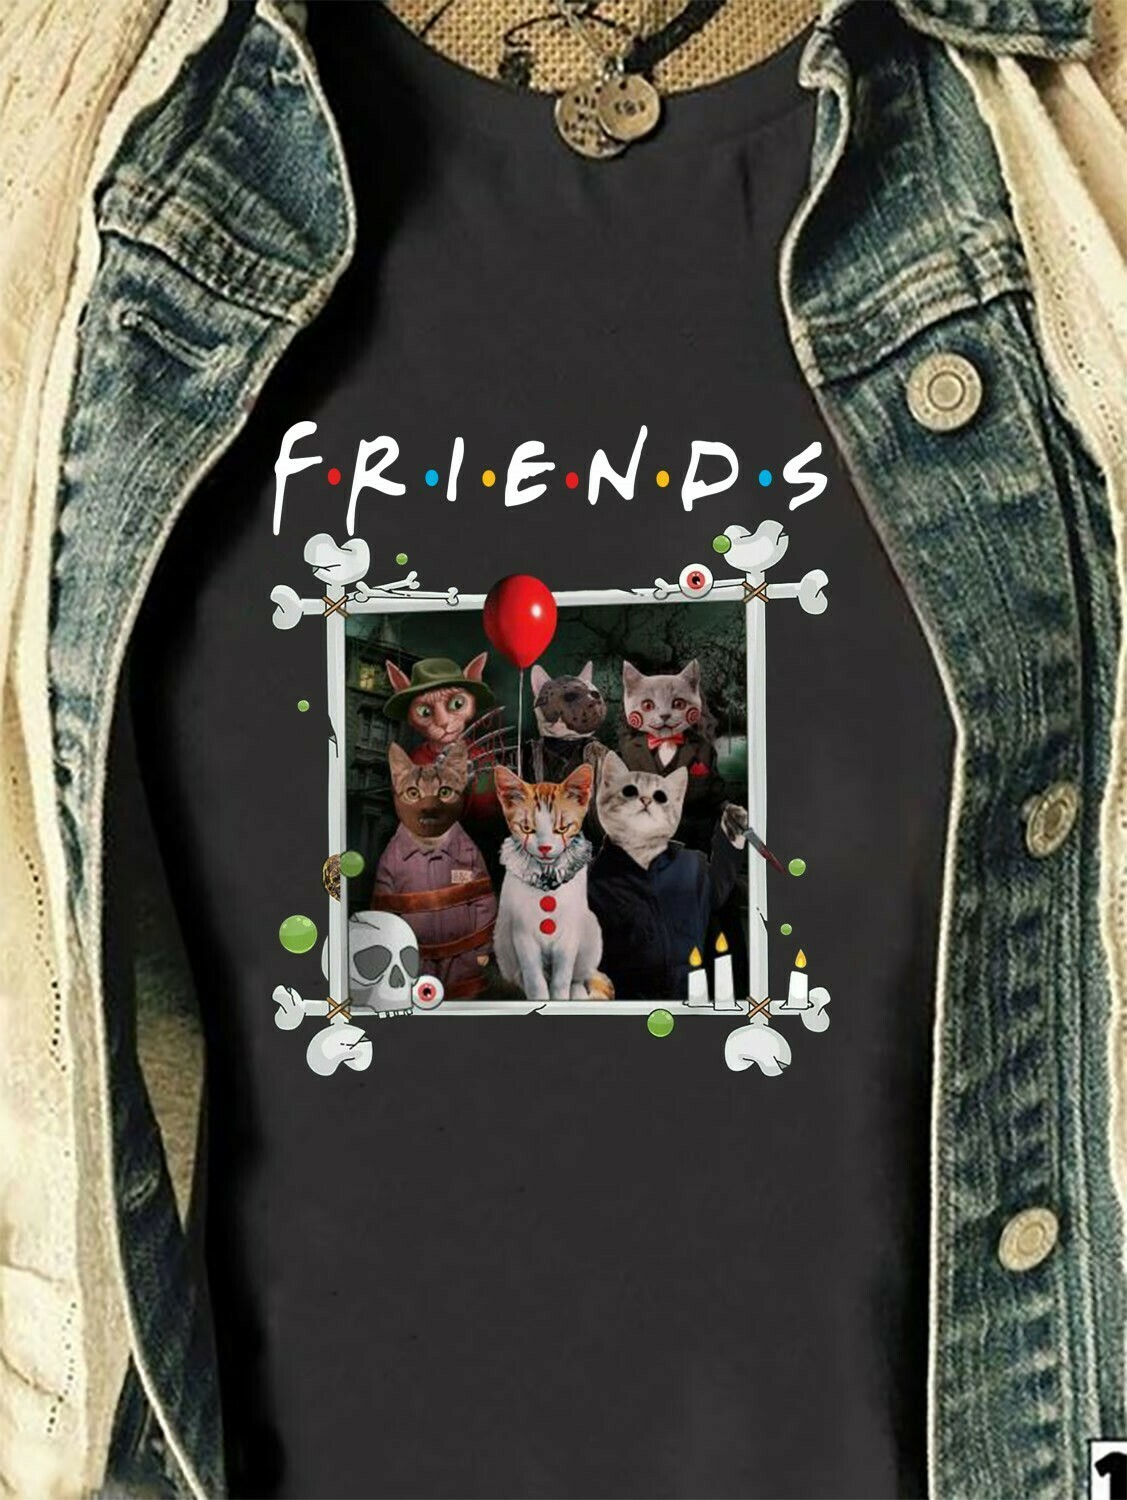 Cat Friends lovers, Cat horror charactor halloween, Cat joker IT, Pennywise Squad Reflection Villains Halloween Horror Movie Mashup T-Shirt Long Sleeve Sweatshirt Hoodie Jolly Family Gifts